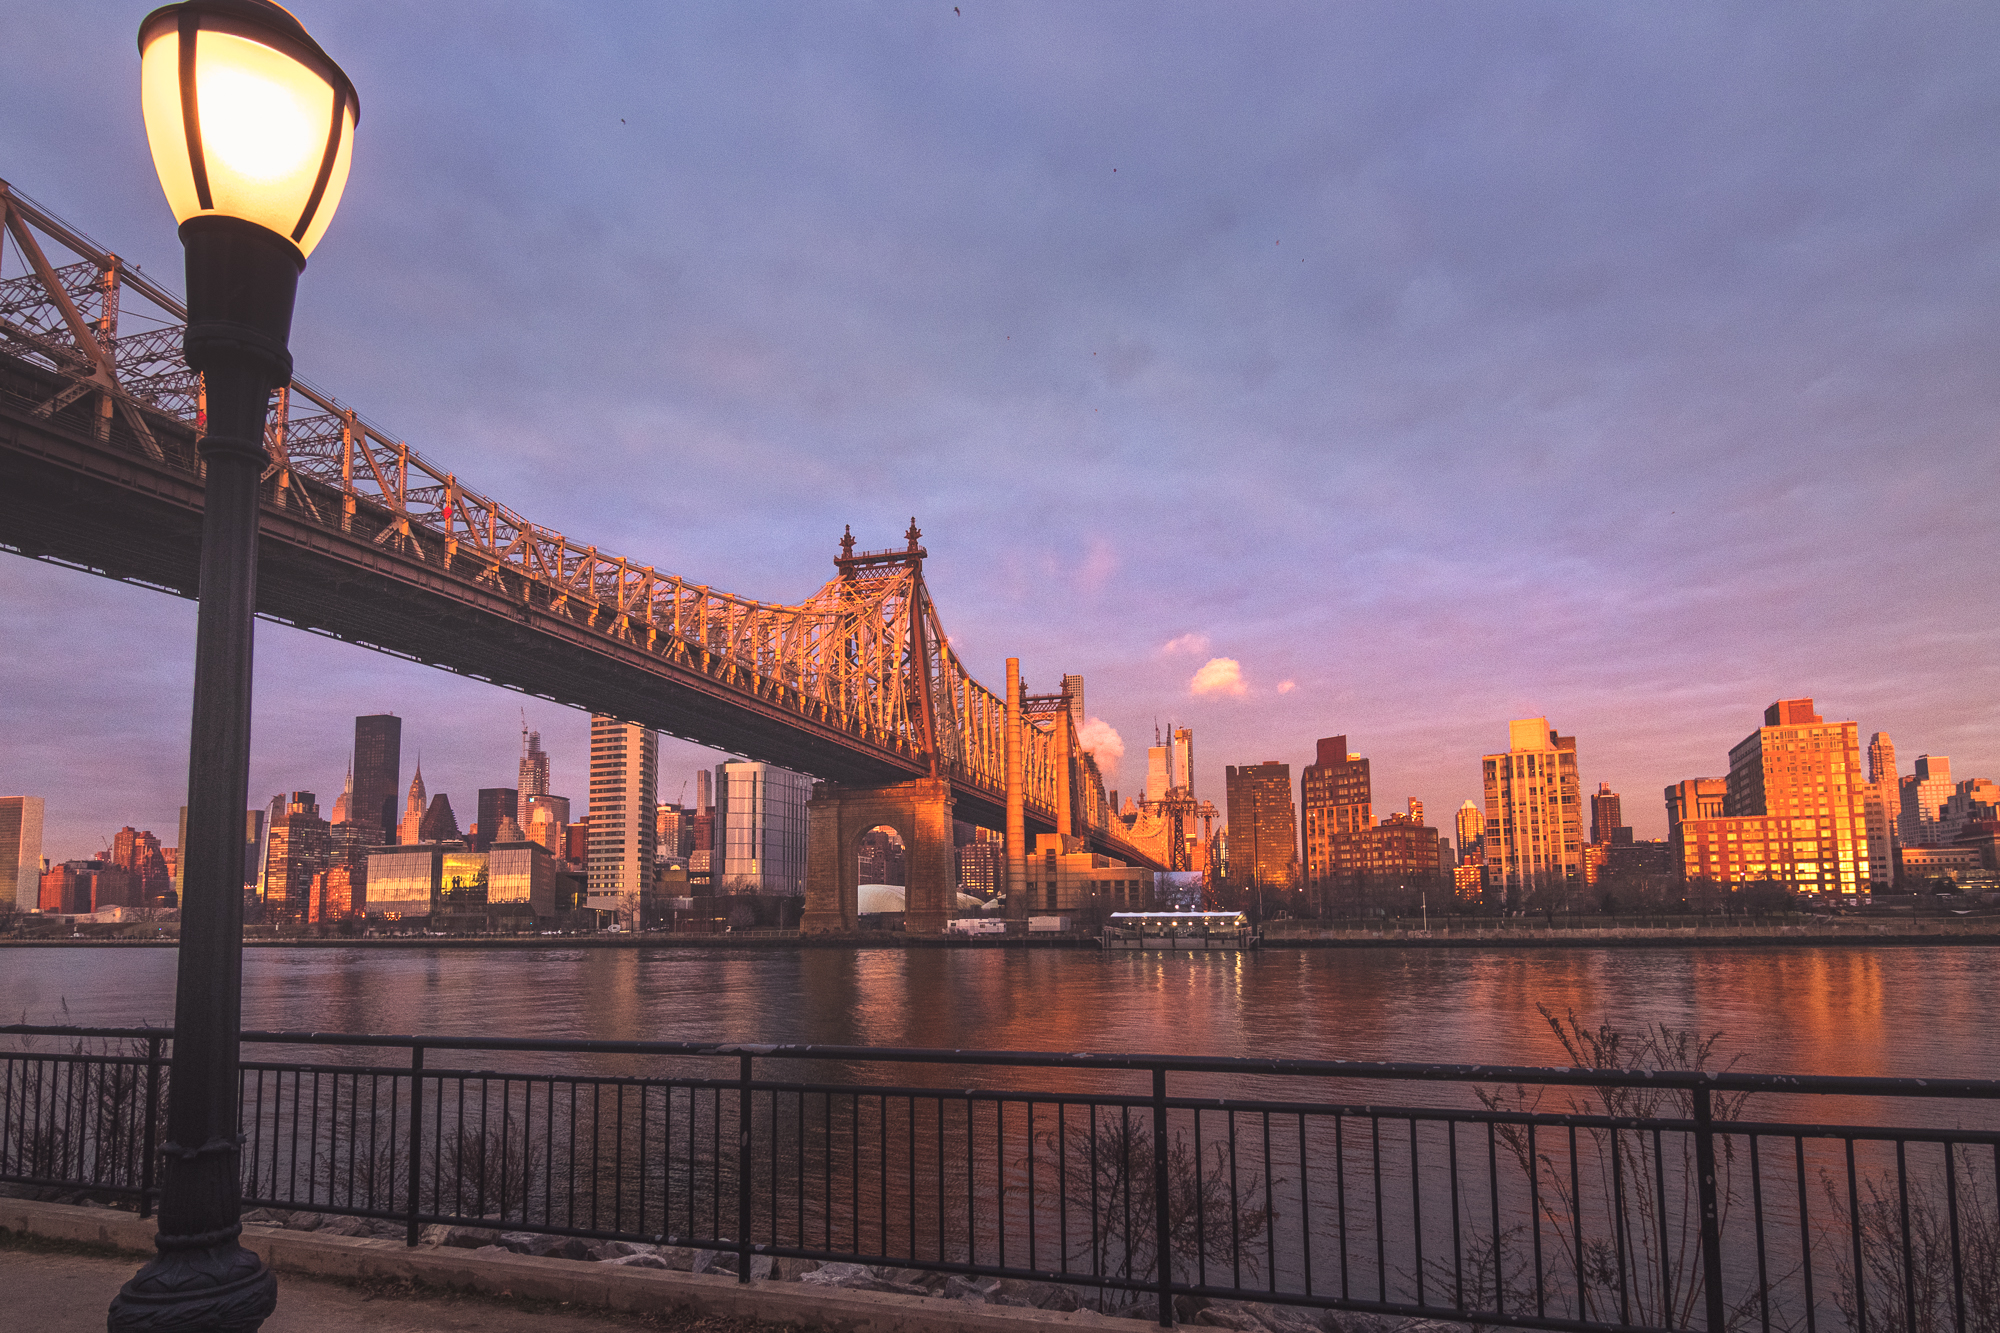 Queensboro bridge sunrise, USA